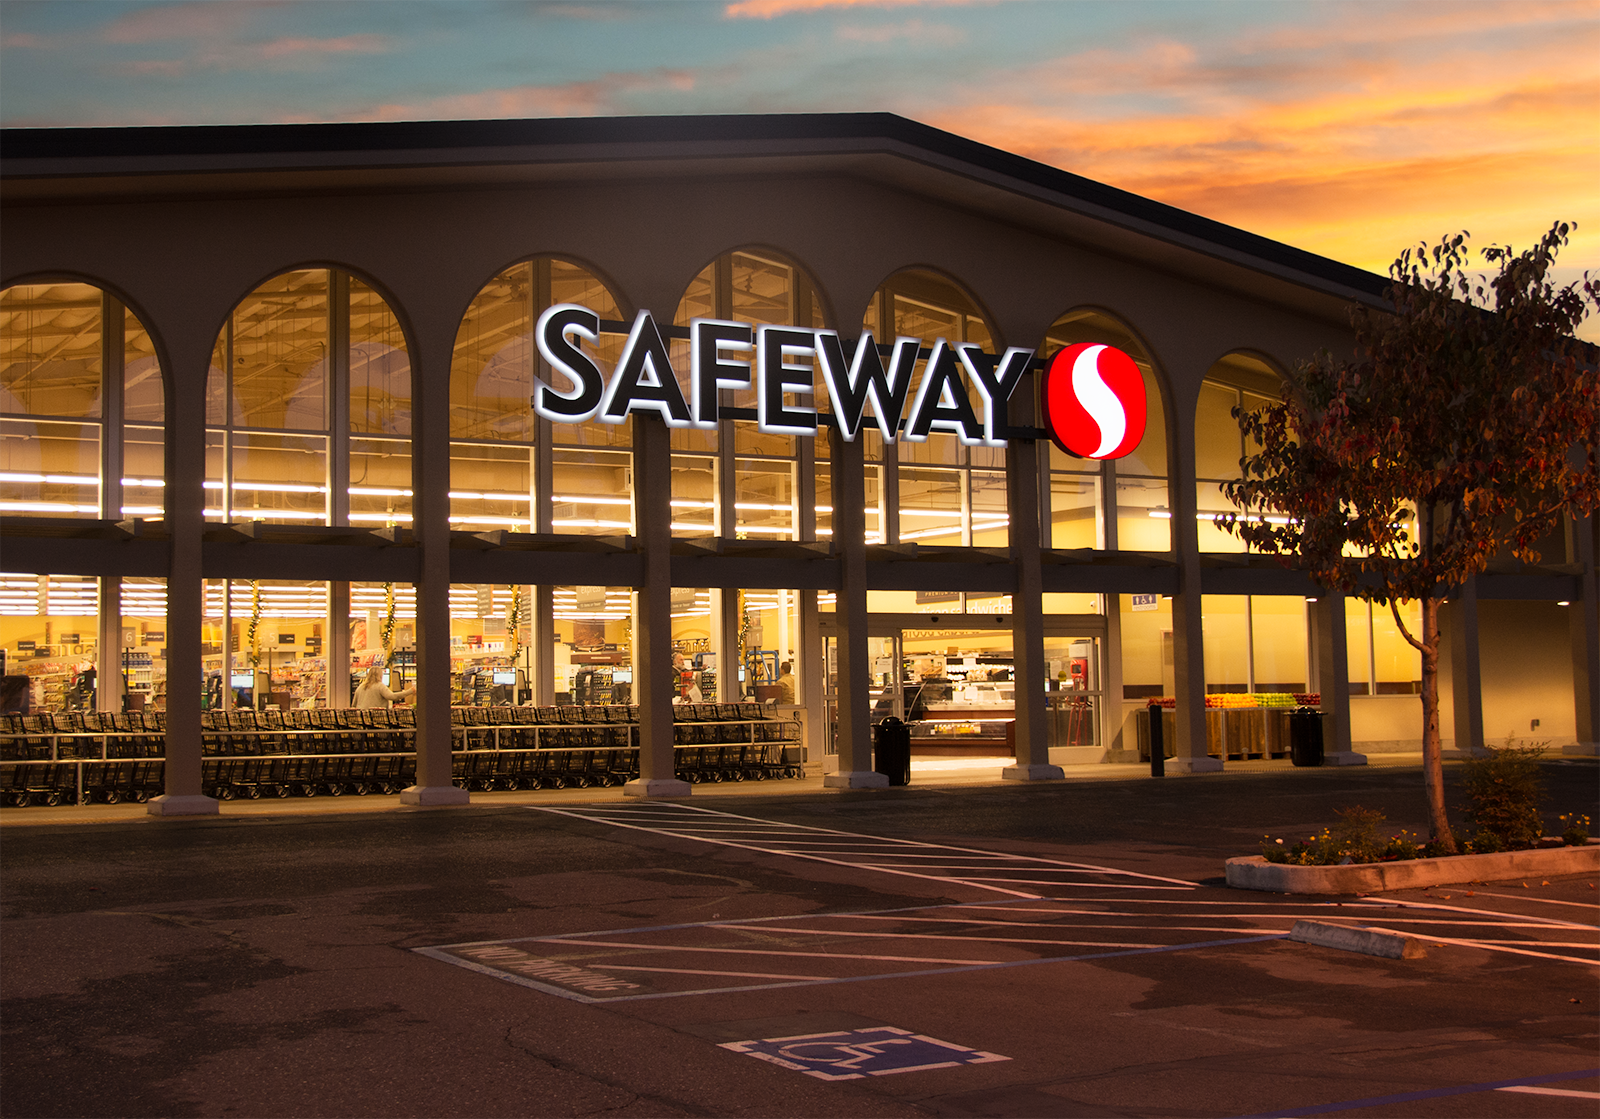 Safeway store front picture of 708 shaw rd east in puyallup washington